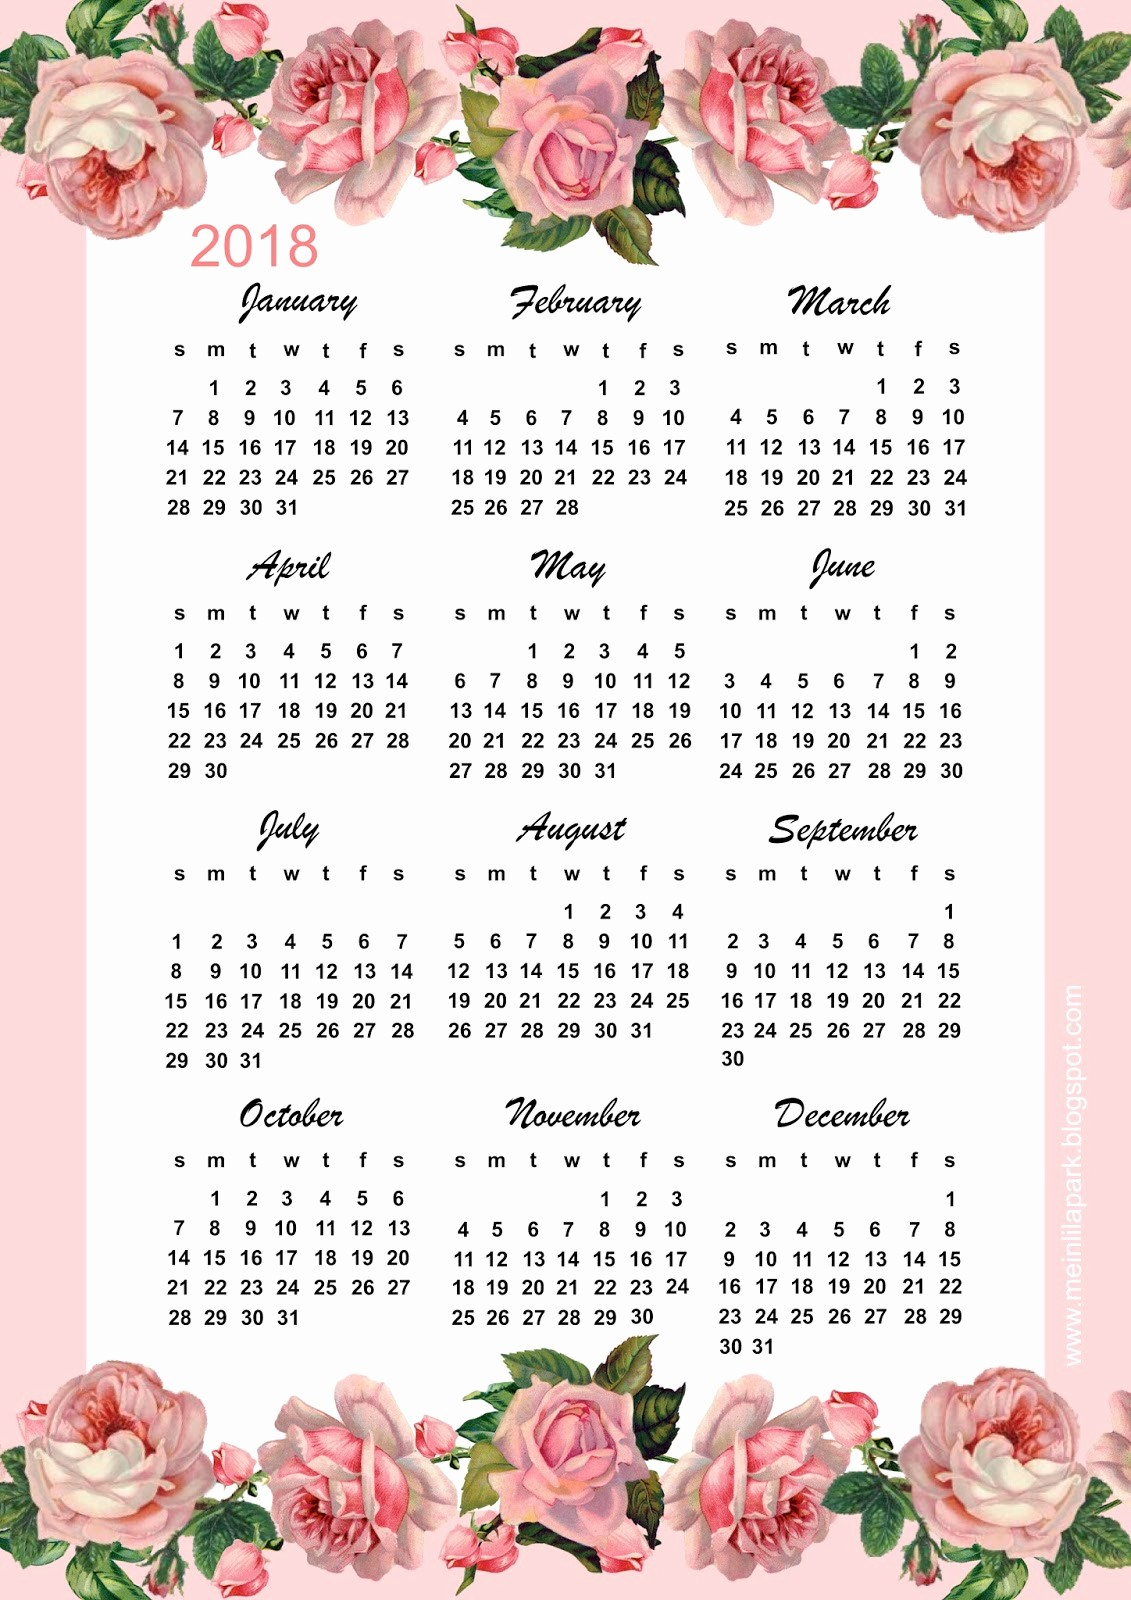 Free Printable Yearly Calendar 2018 Awesome Free Printable 2018 Rose Calendar – Year at A Glance